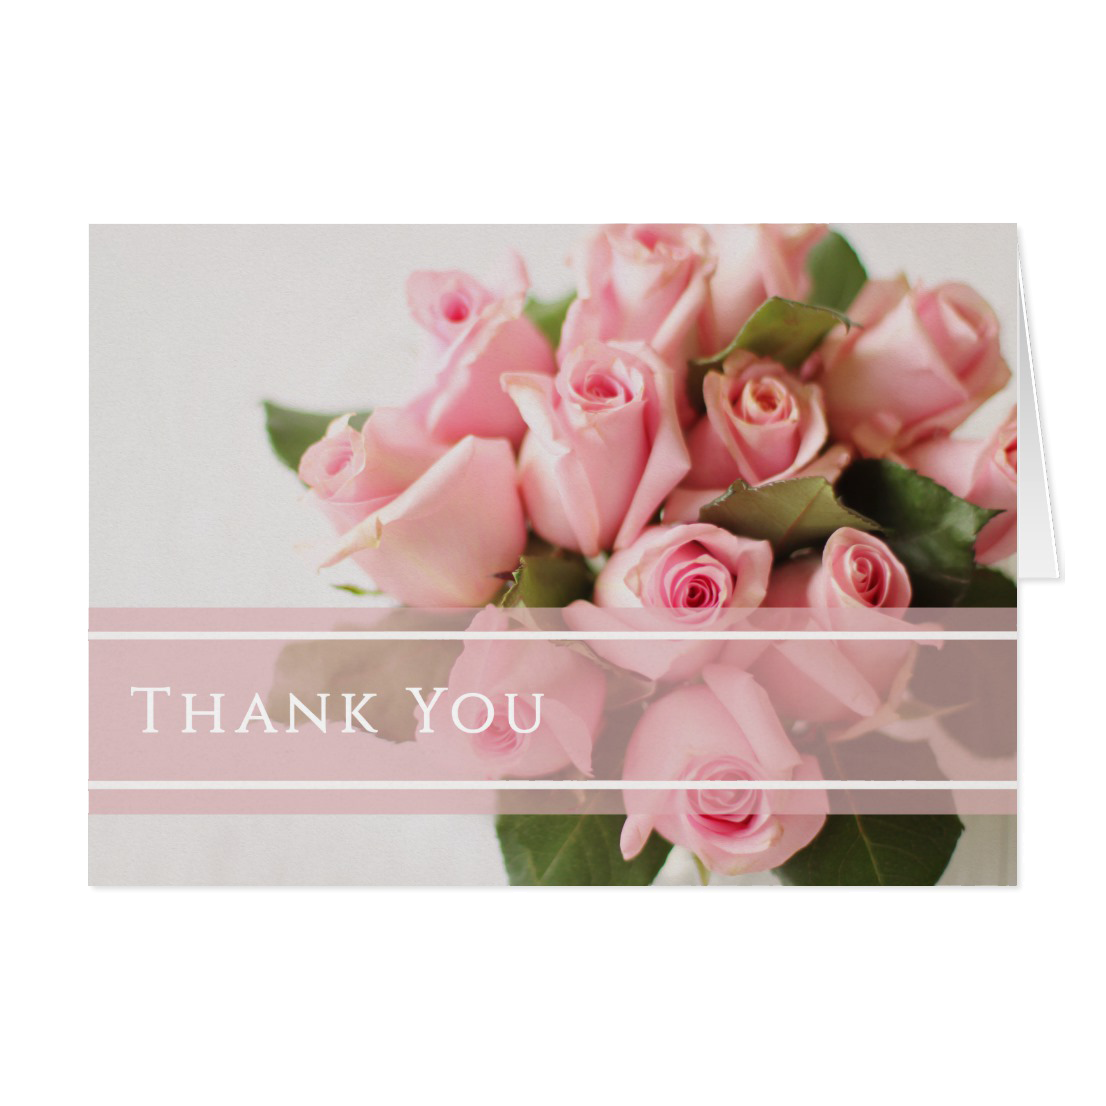 pink bouquet roses thank you note card front